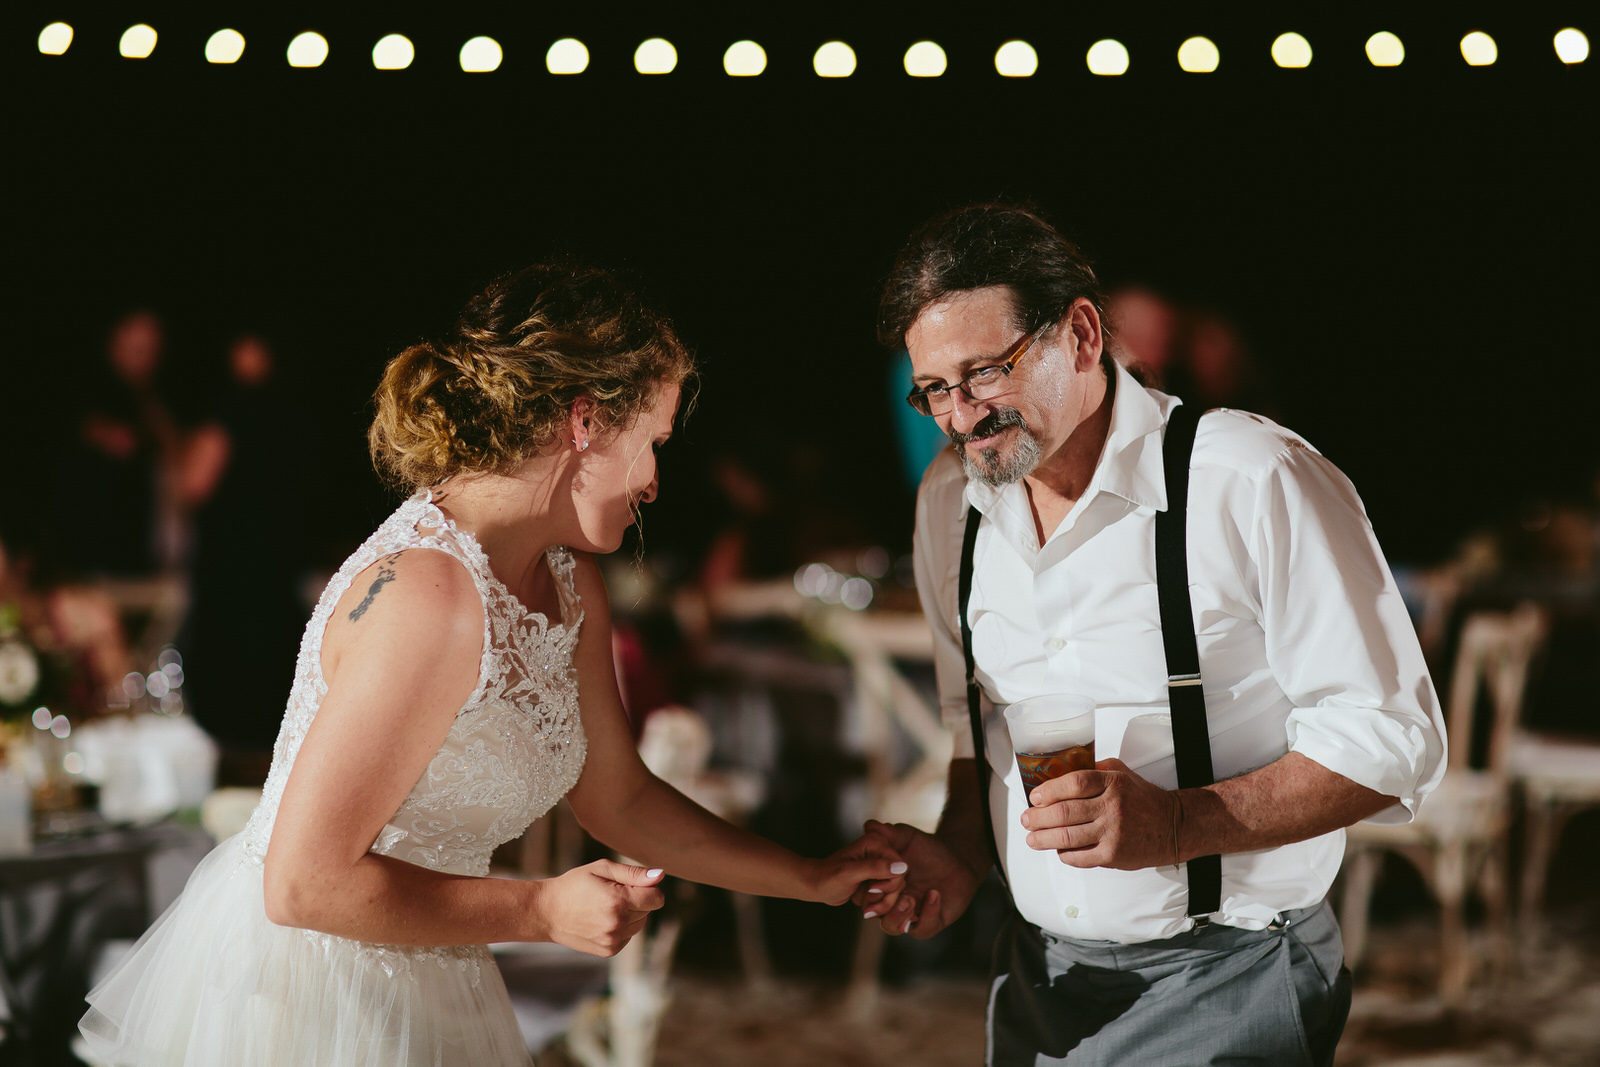 father_and_daughter_dancing_destination_wedding_tropical_fun.jpg